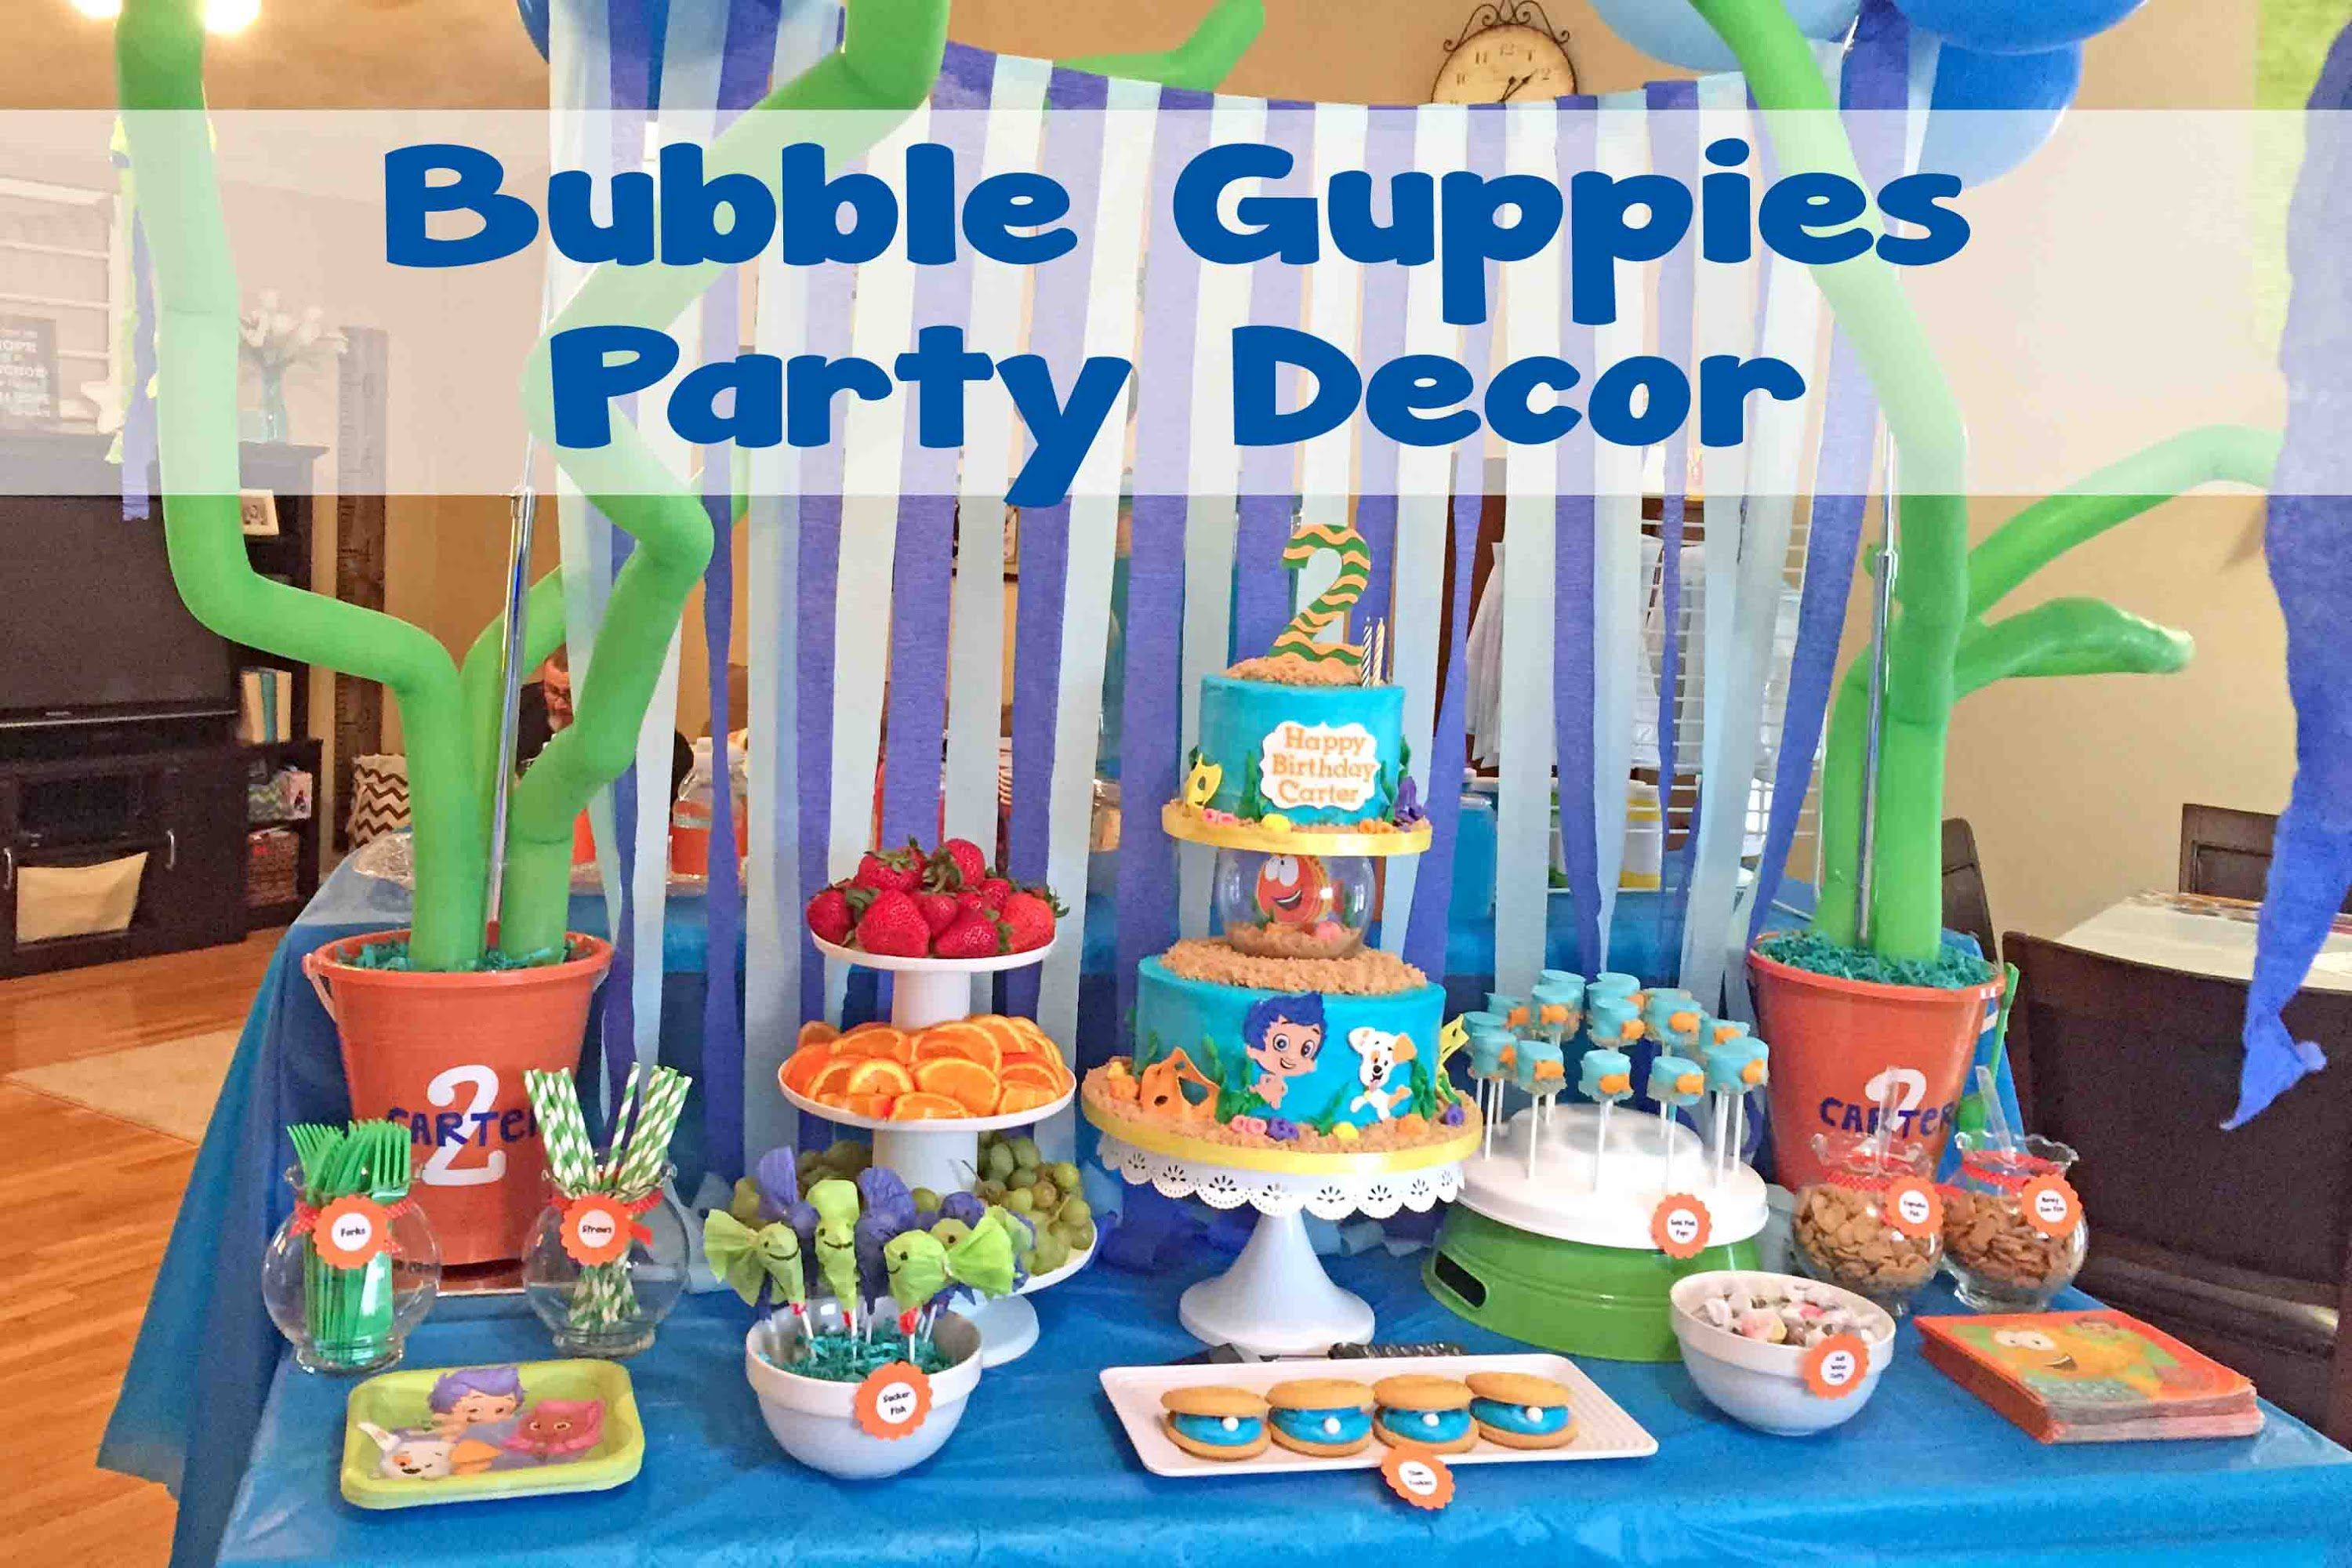 Bubble Guppies Under the Sea Party Decor | #48 | Bryce 3rd B-day ...